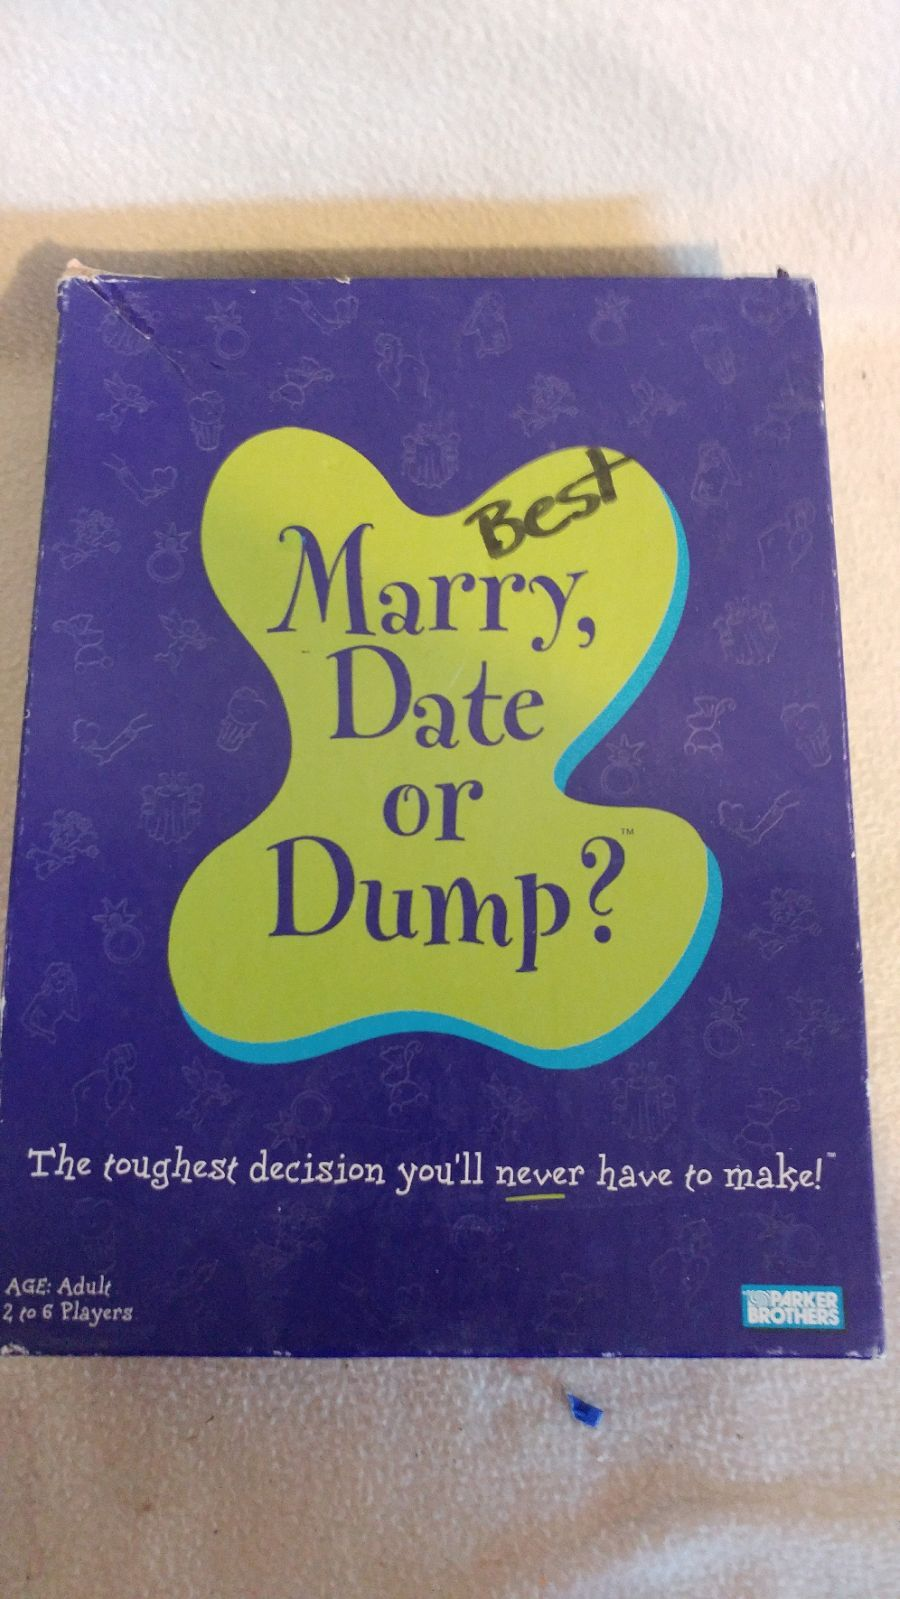 marry date or dump adult gameparker brothers. family fun game